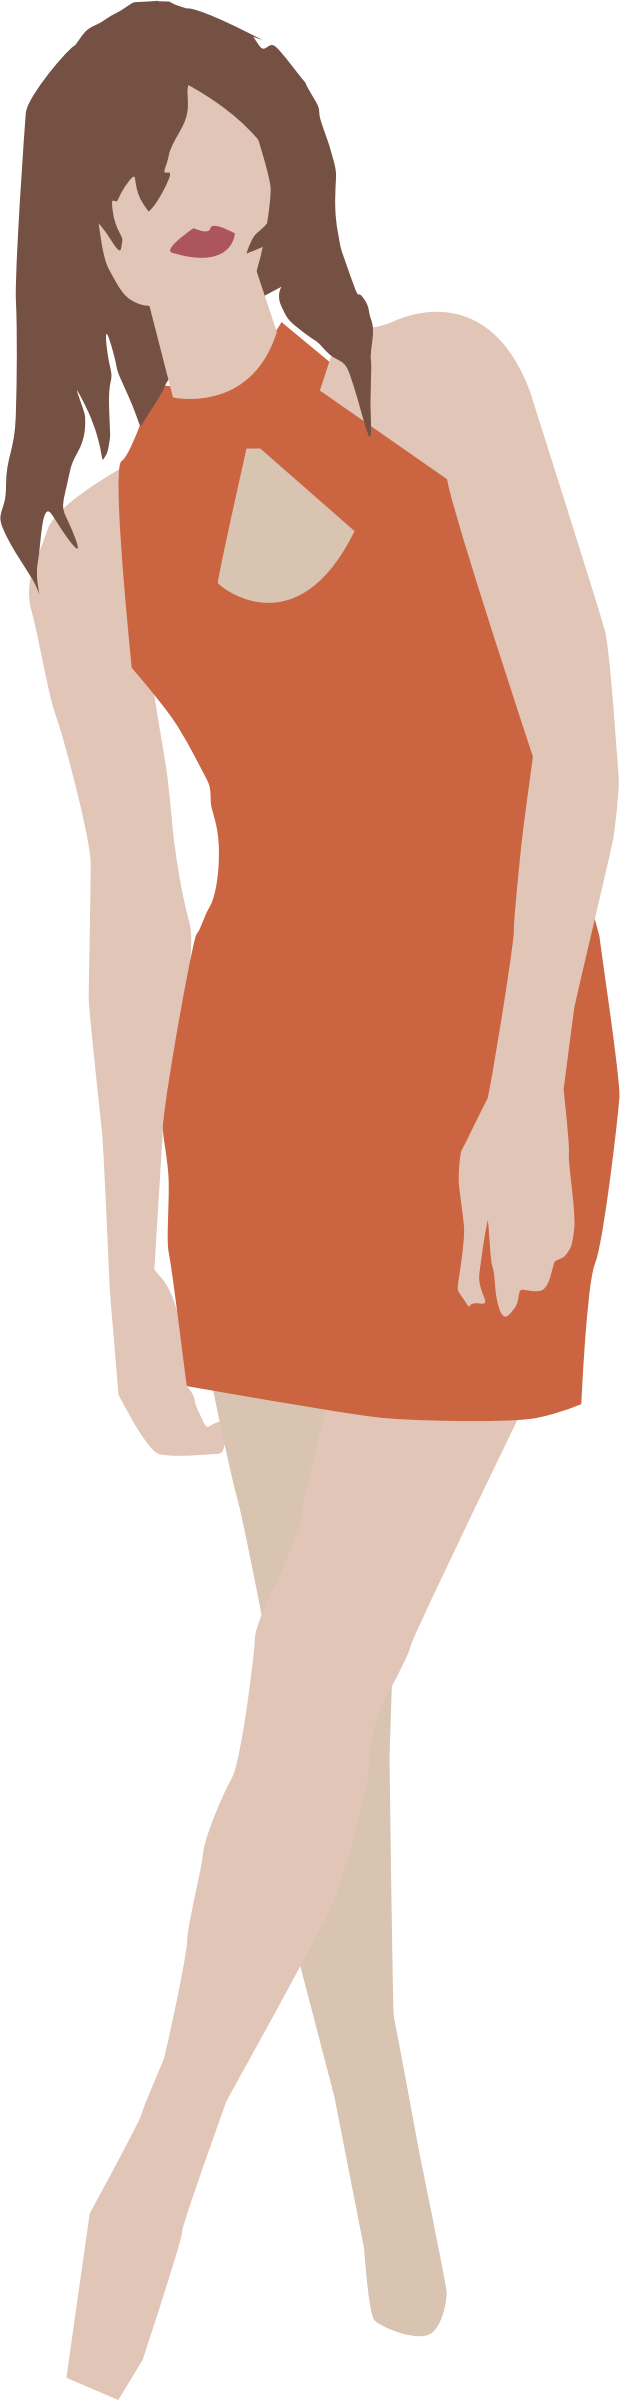 Girl in simple dress by tribla